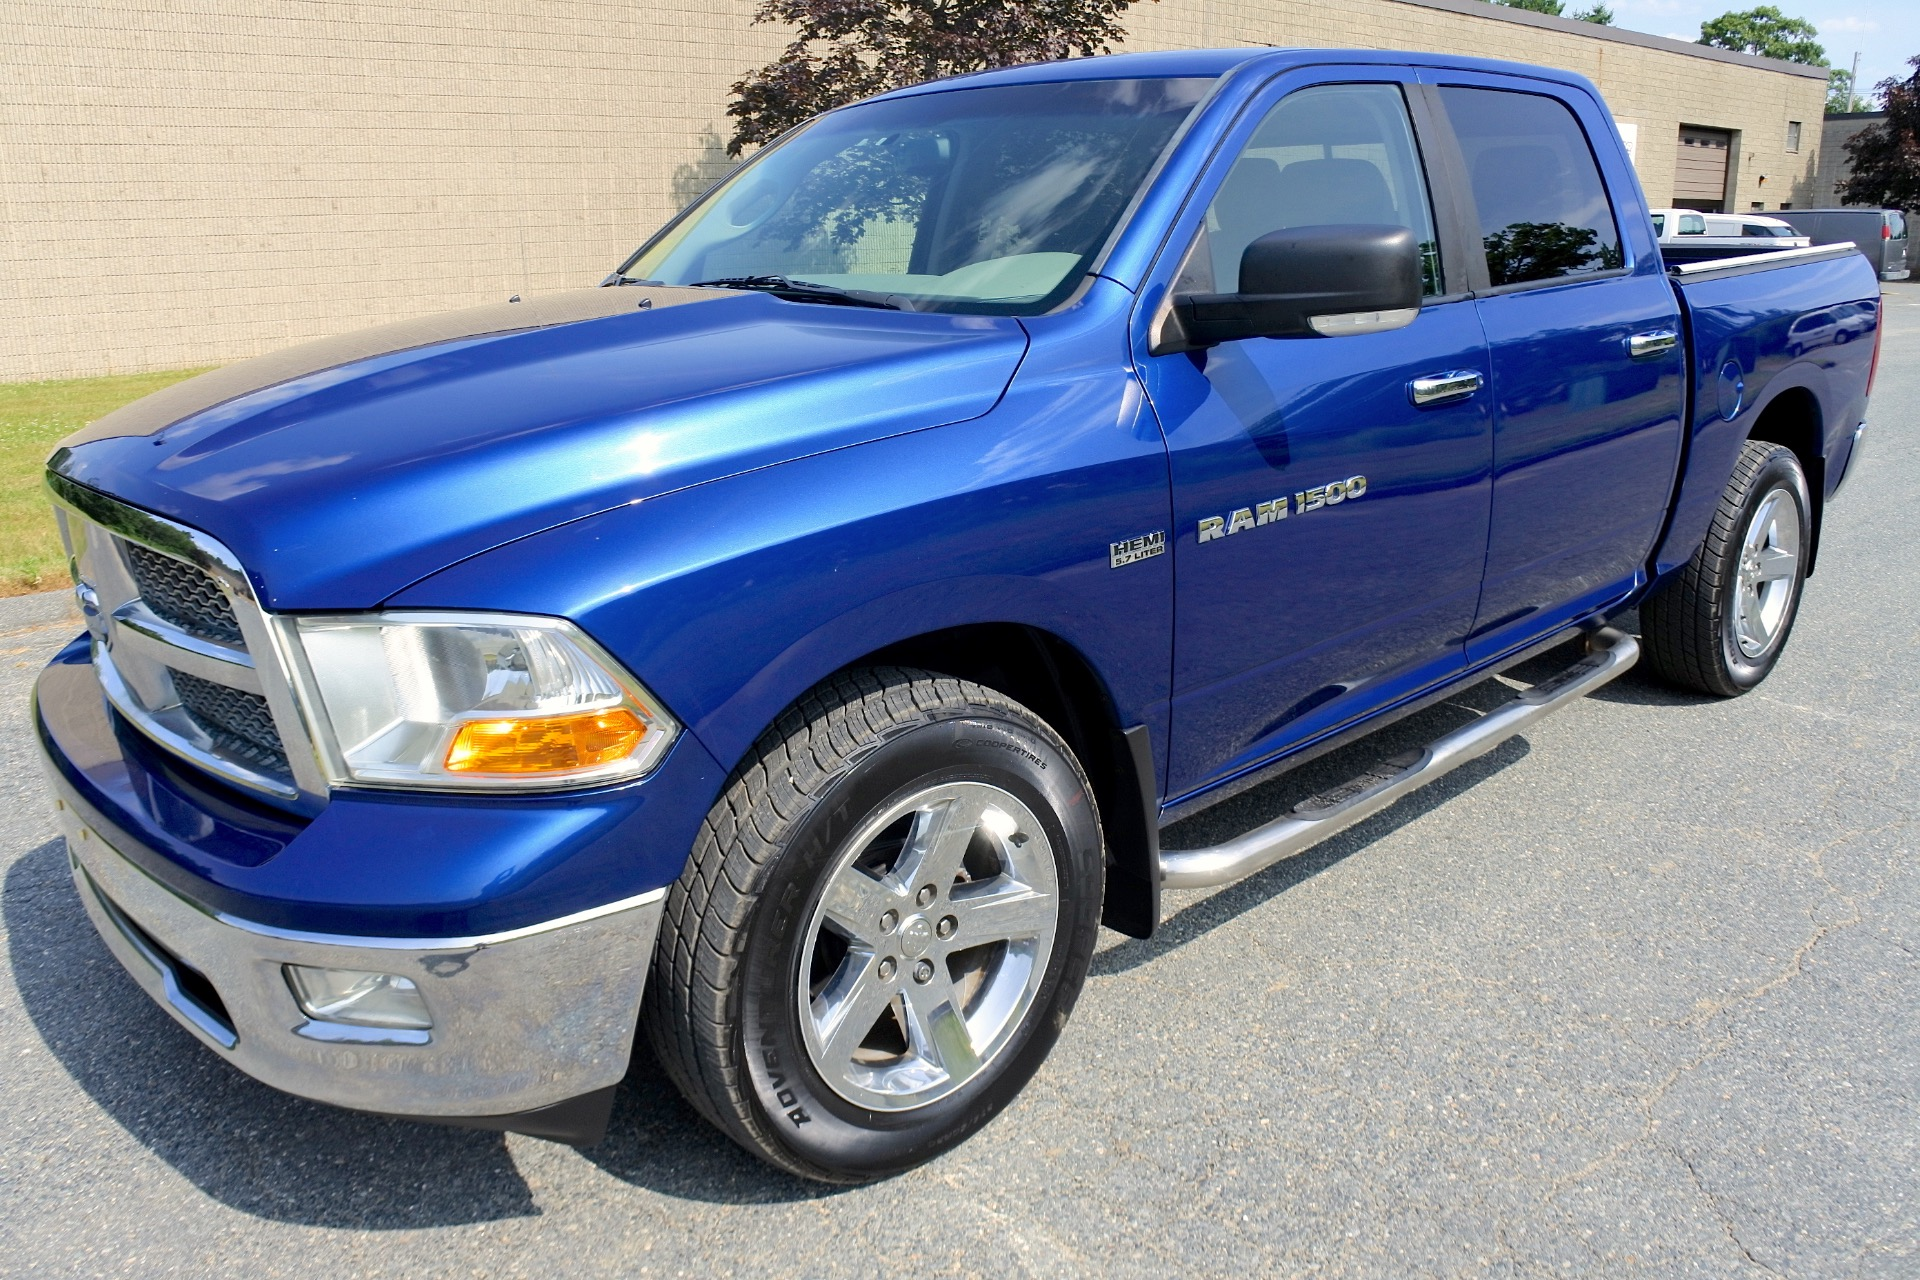 Used 2011 Ram 1500 4WD Crew Cab 140.5' Big Horn Used 2011 Ram 1500 4WD Crew Cab 140.5' Big Horn for sale  at Metro West Motorcars LLC in Shrewsbury MA 1